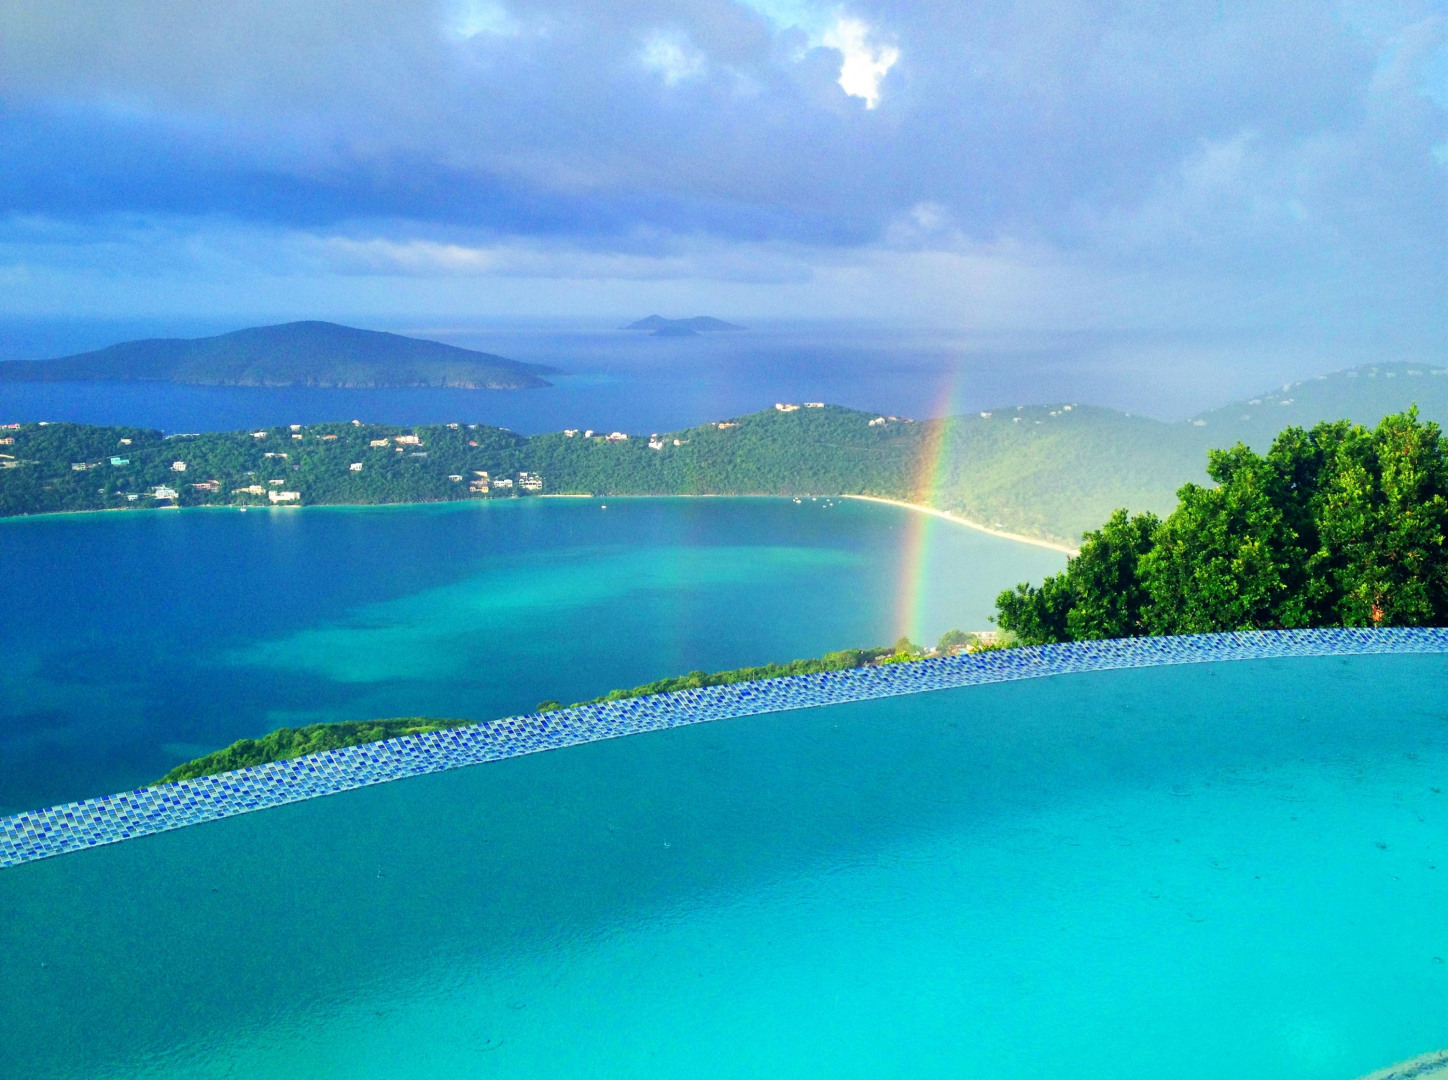 View of Rainbow over Caribbean Sea from Rental Property in ST THomas